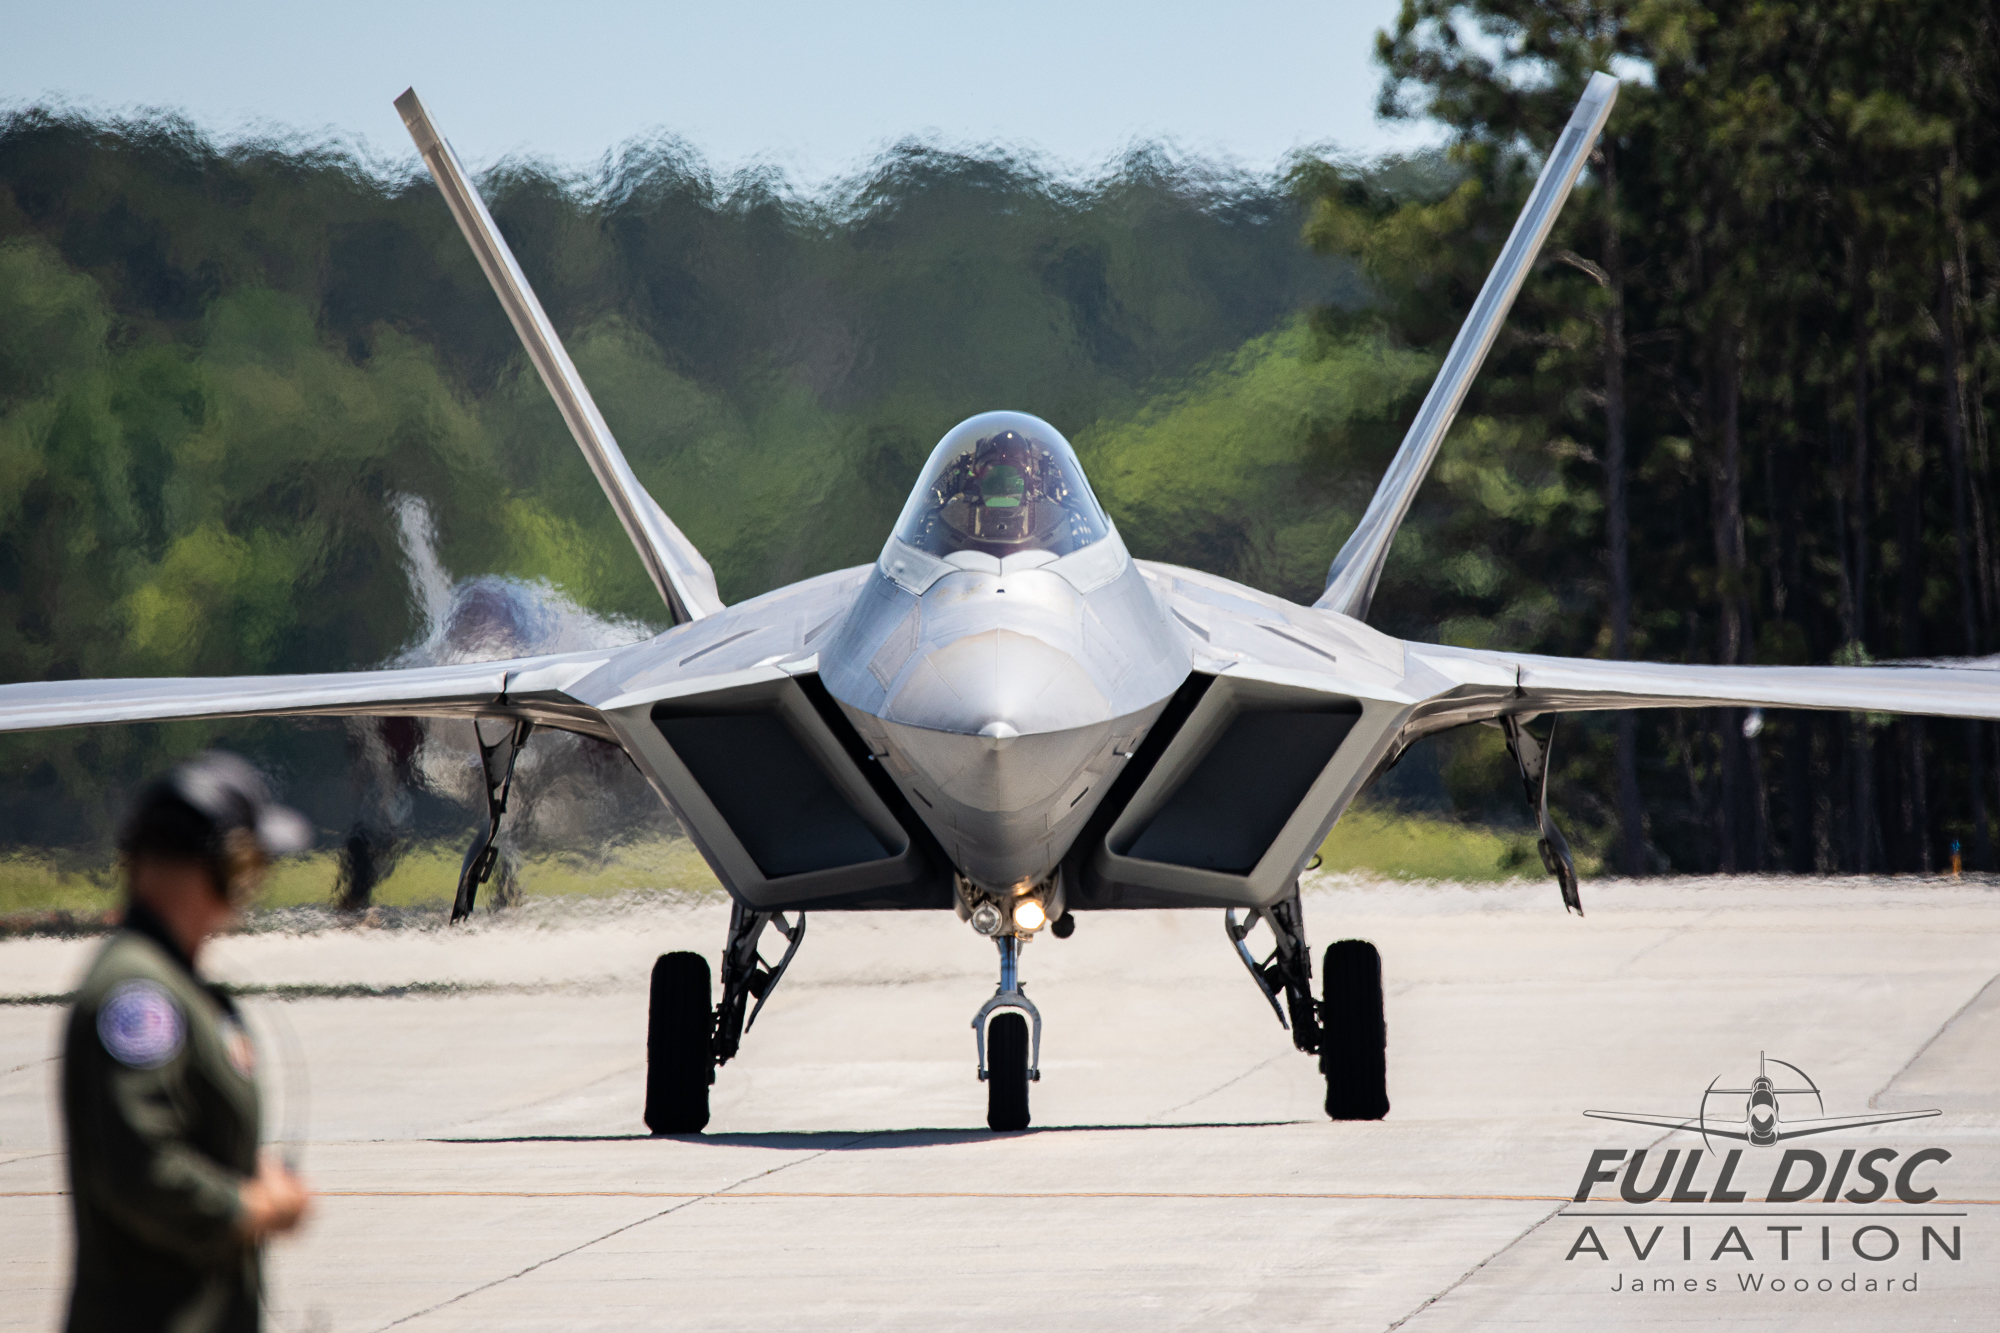 F22DemoTeam_FullDiscAviation_JamesWoodard-April 27, 2019-28.jpg